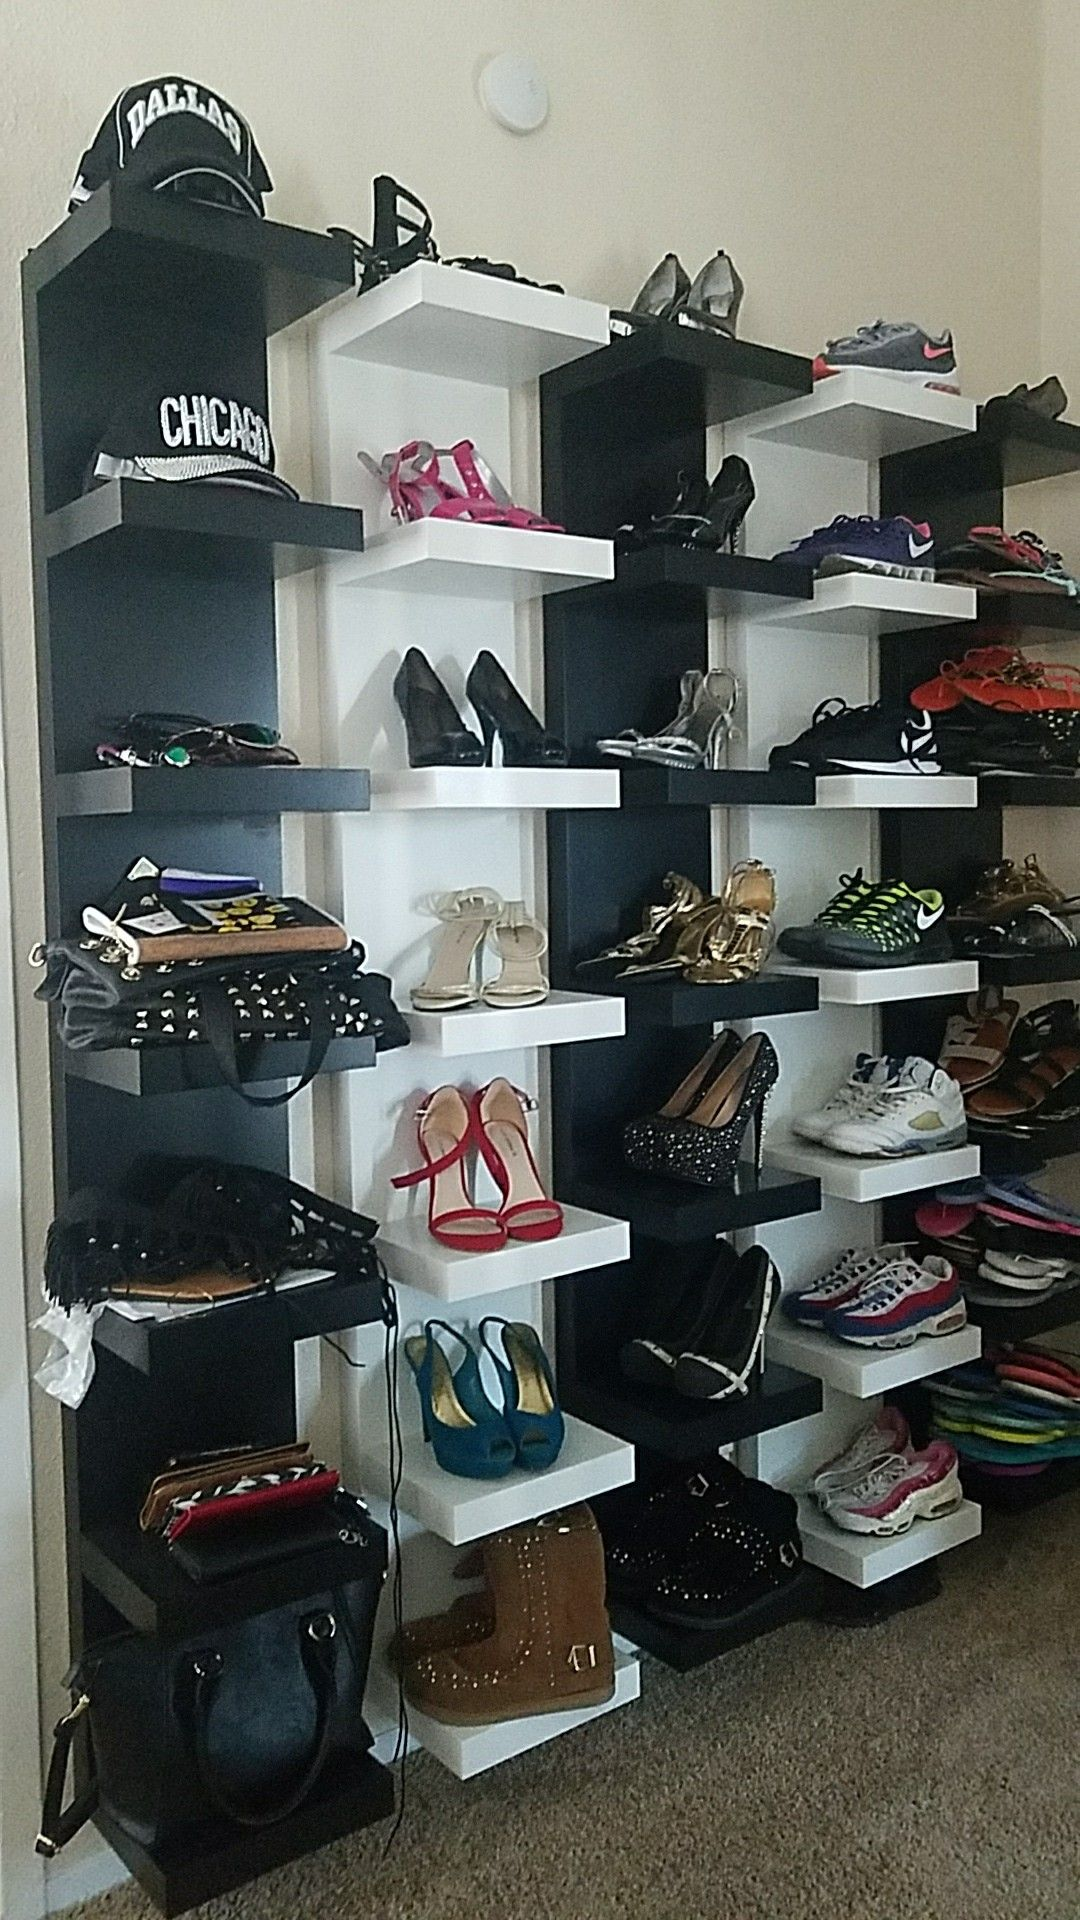 Lack Wall Shelves For All Shoes And Accessories Diy Shoe Rack Shoe Rack Garage Shoe Rack